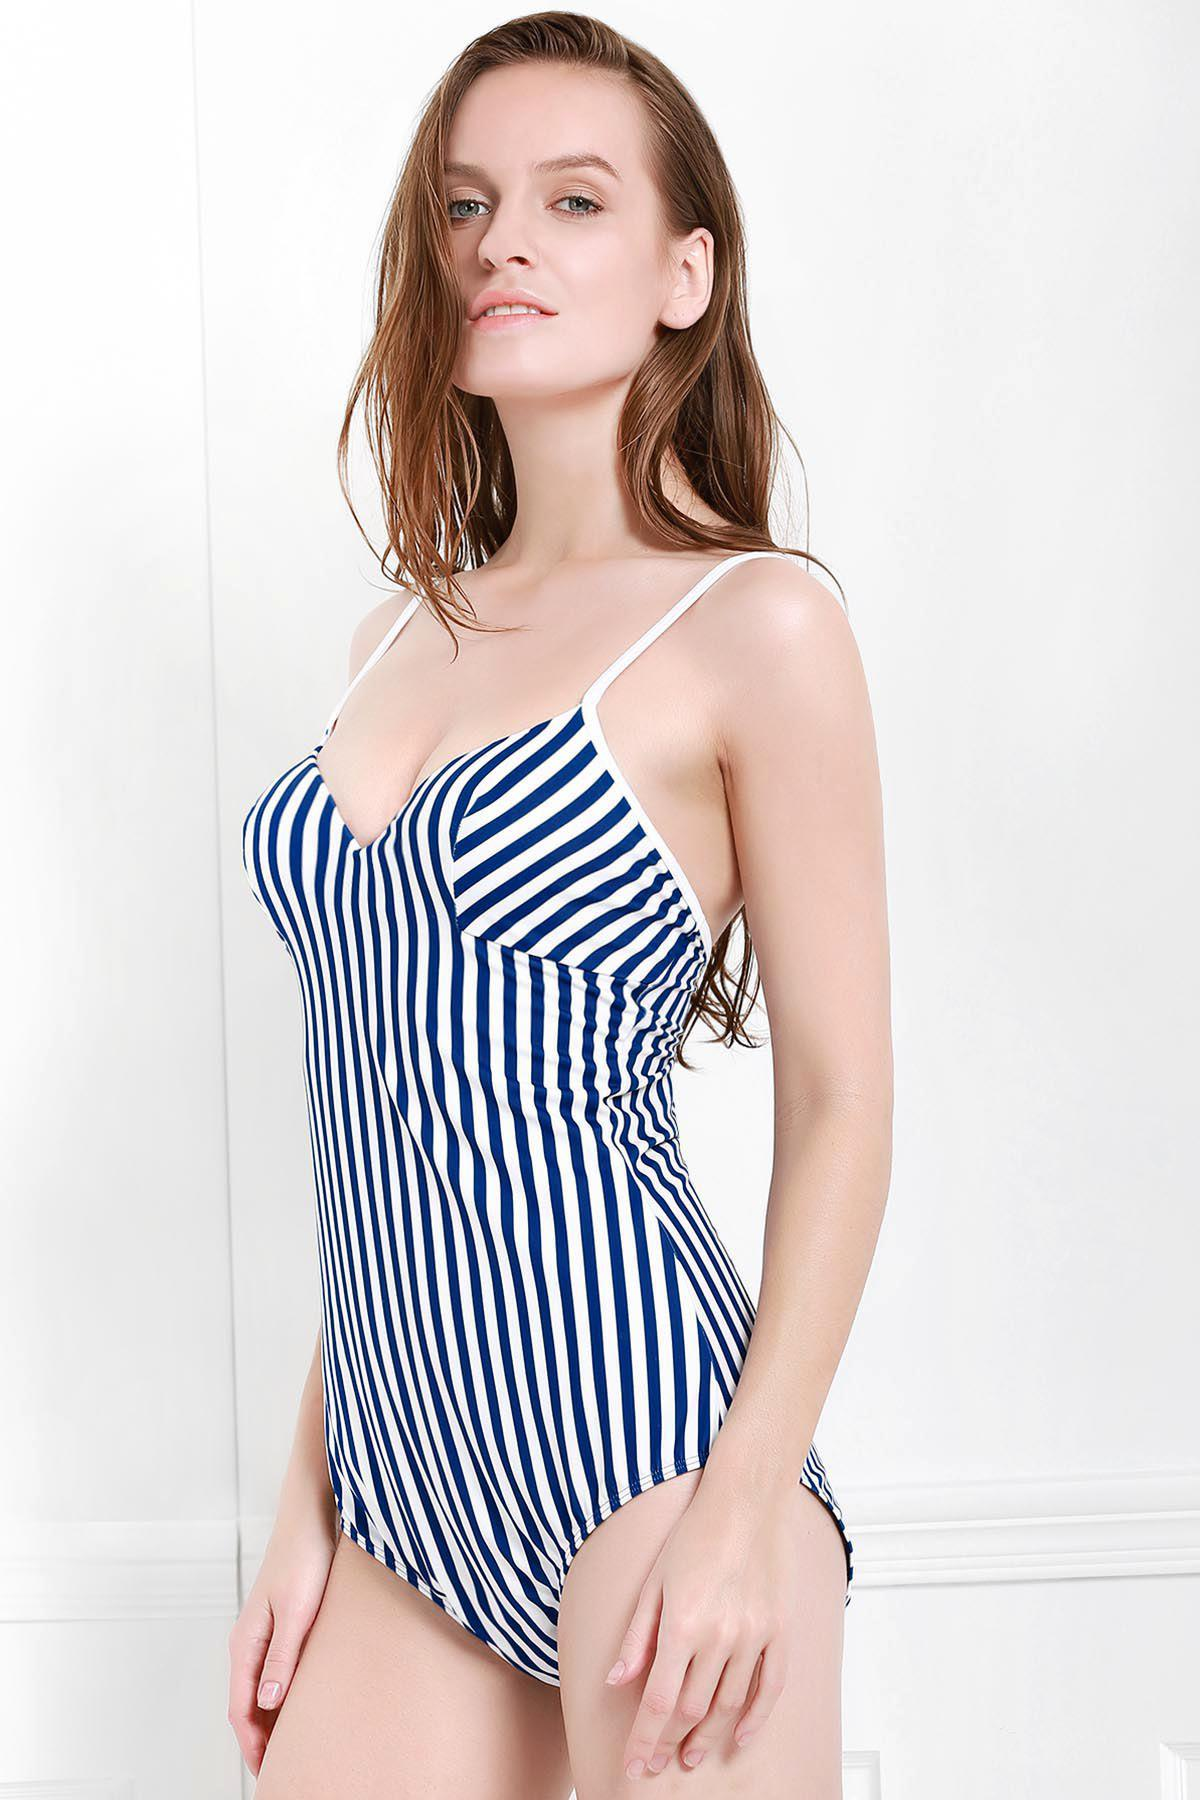 Фото Chic Spaghetti Strap Vertical Striped One-Piece Swimwear For Women sexy style spaghetti straps diamante one piece women s swimwear